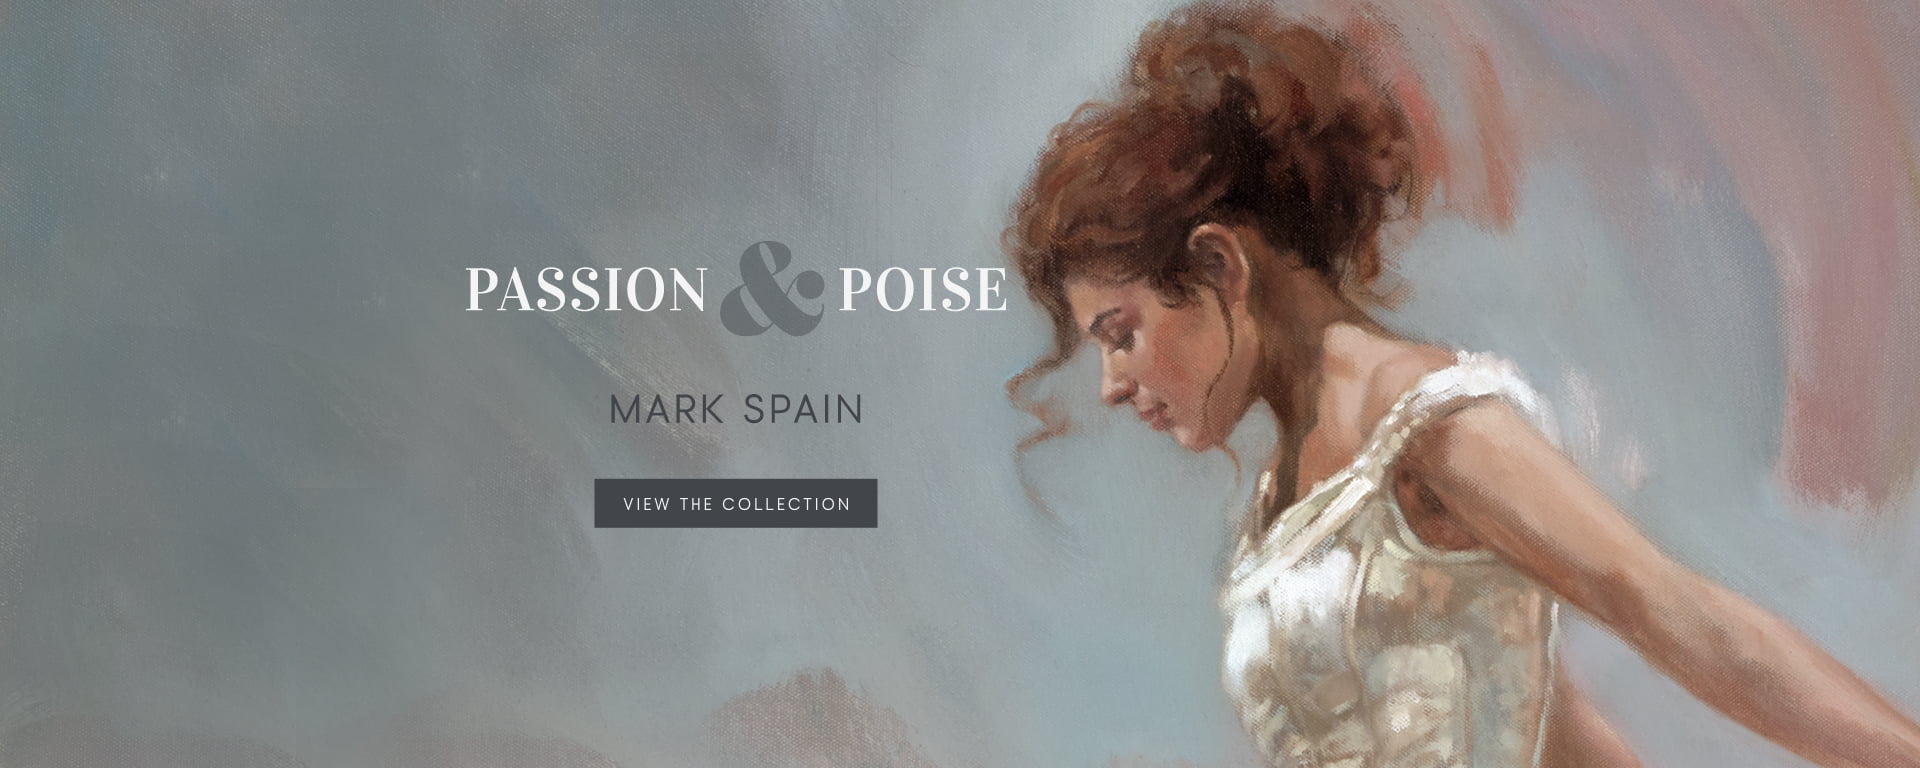 Mark Spain | Passion and Poise